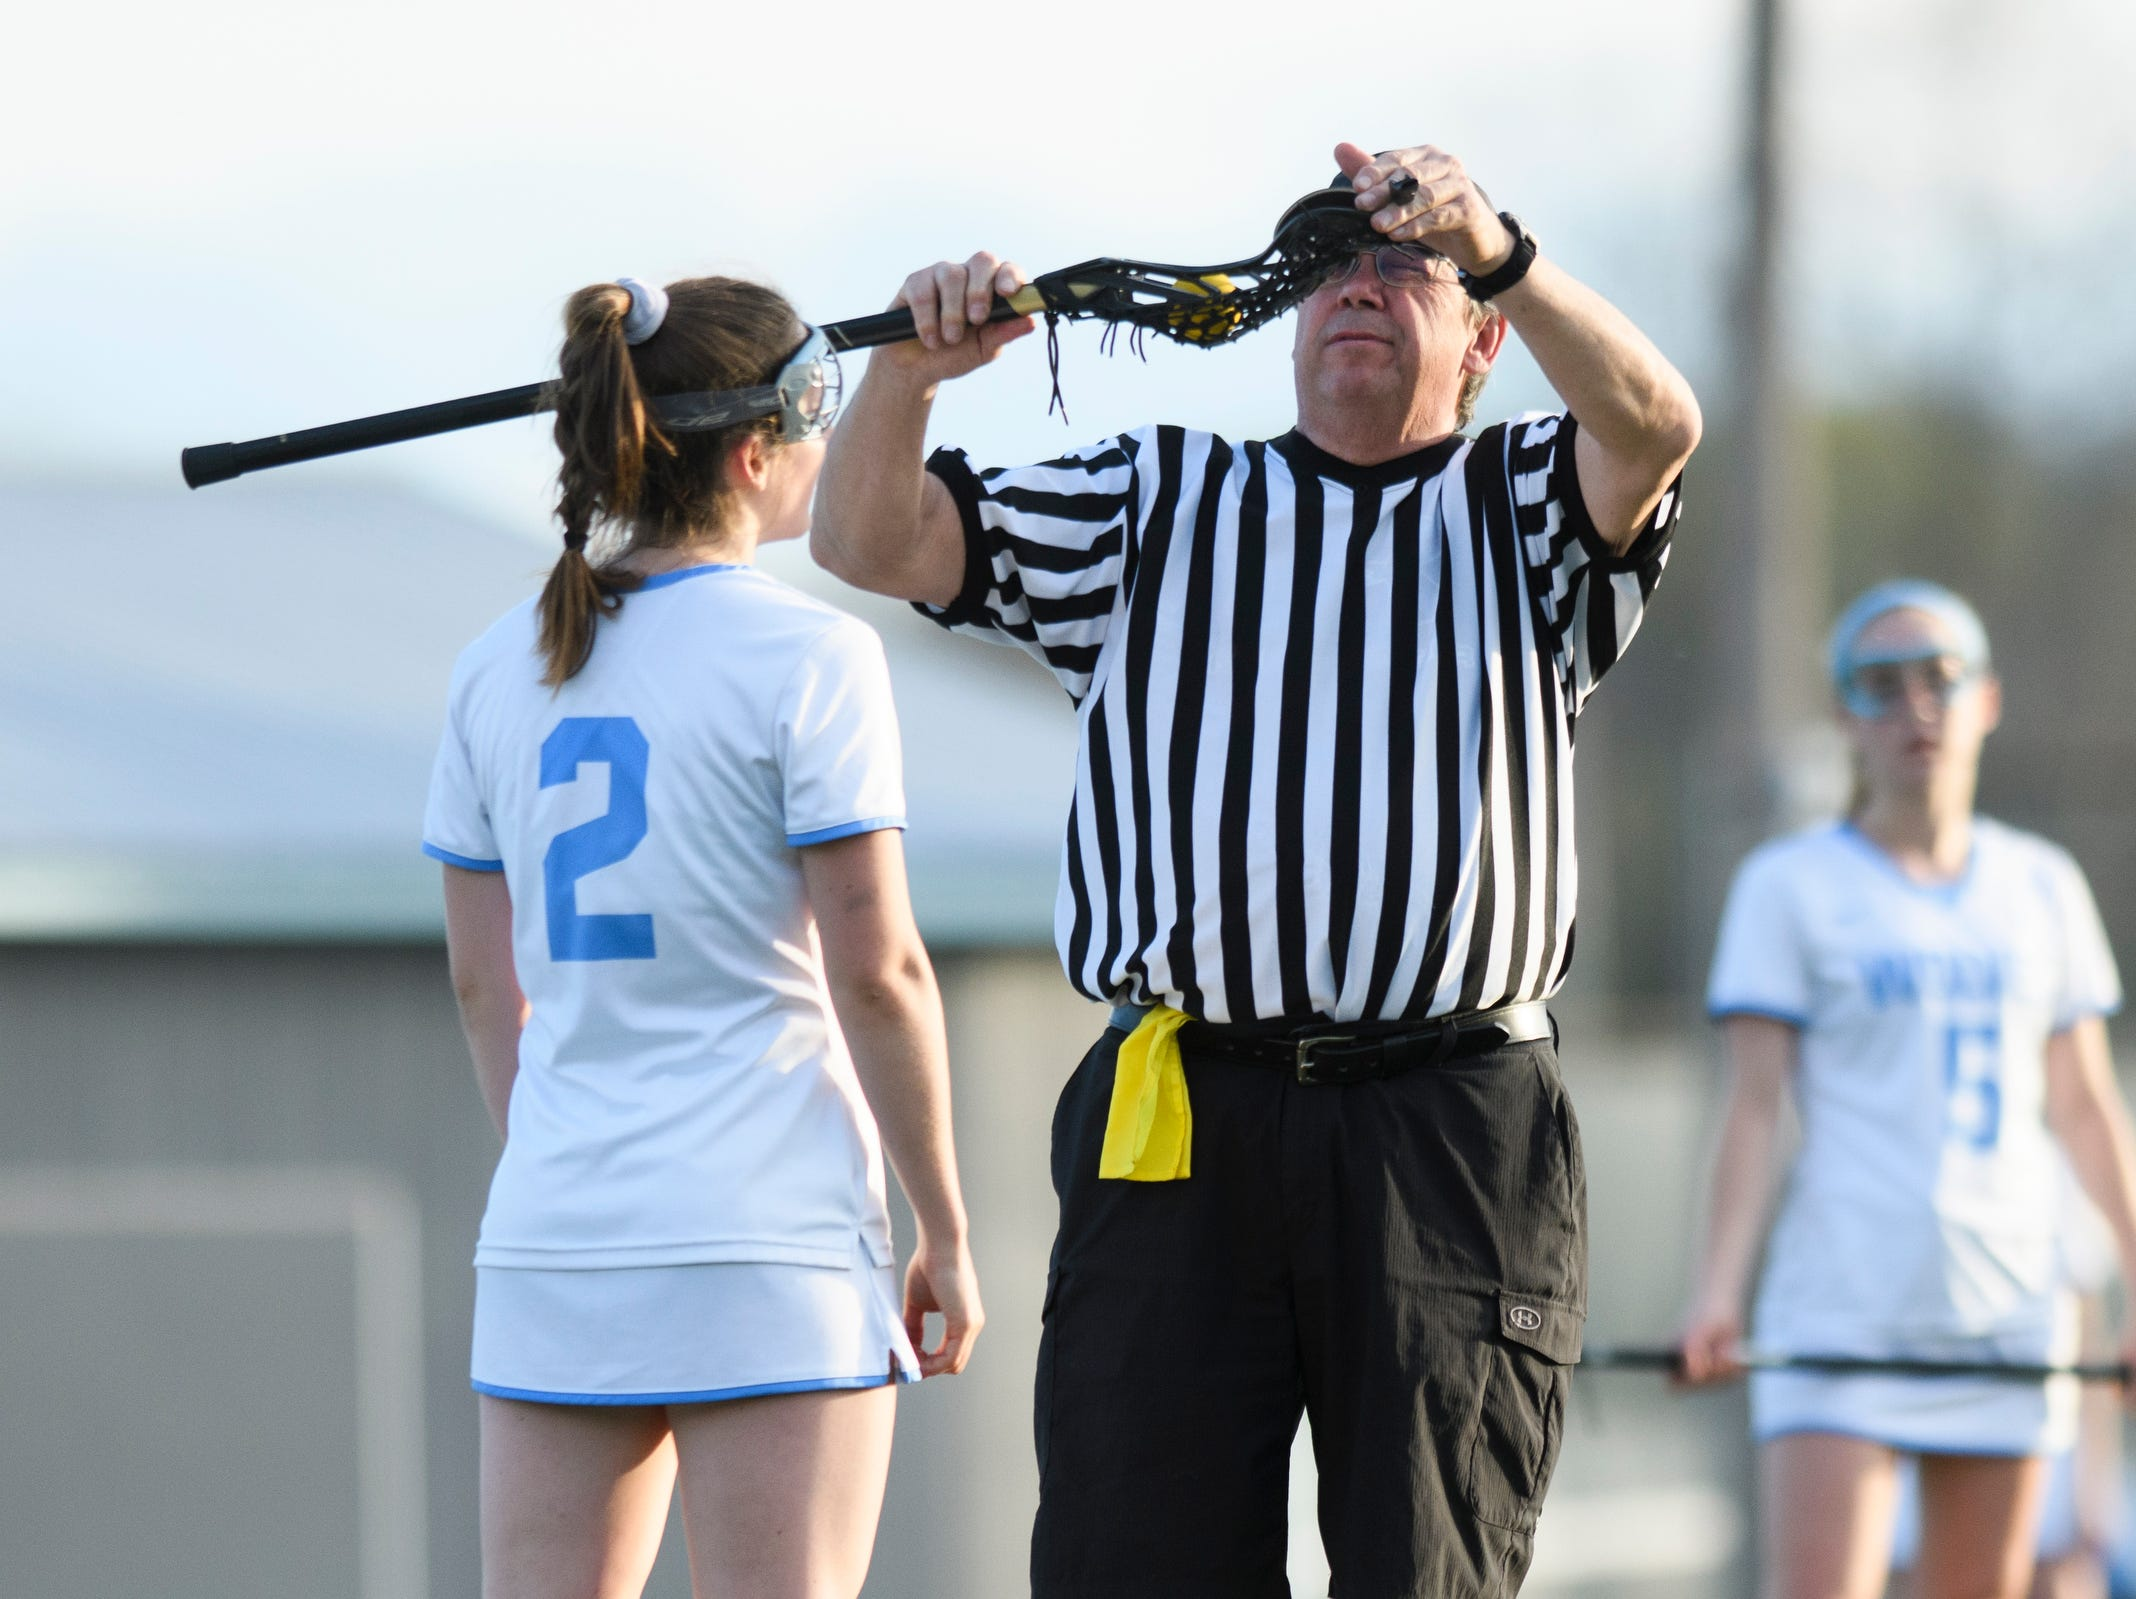 Referee Kevin Hebert checks the stick of South Burlington's Kate Hall (2) during the high school girls lacrosse game between Burr and Burton Bulldogs and the South Burlington Wolves at Munson Field on Monday afternoon May 6, 2019 in South Burlington, Vermont.